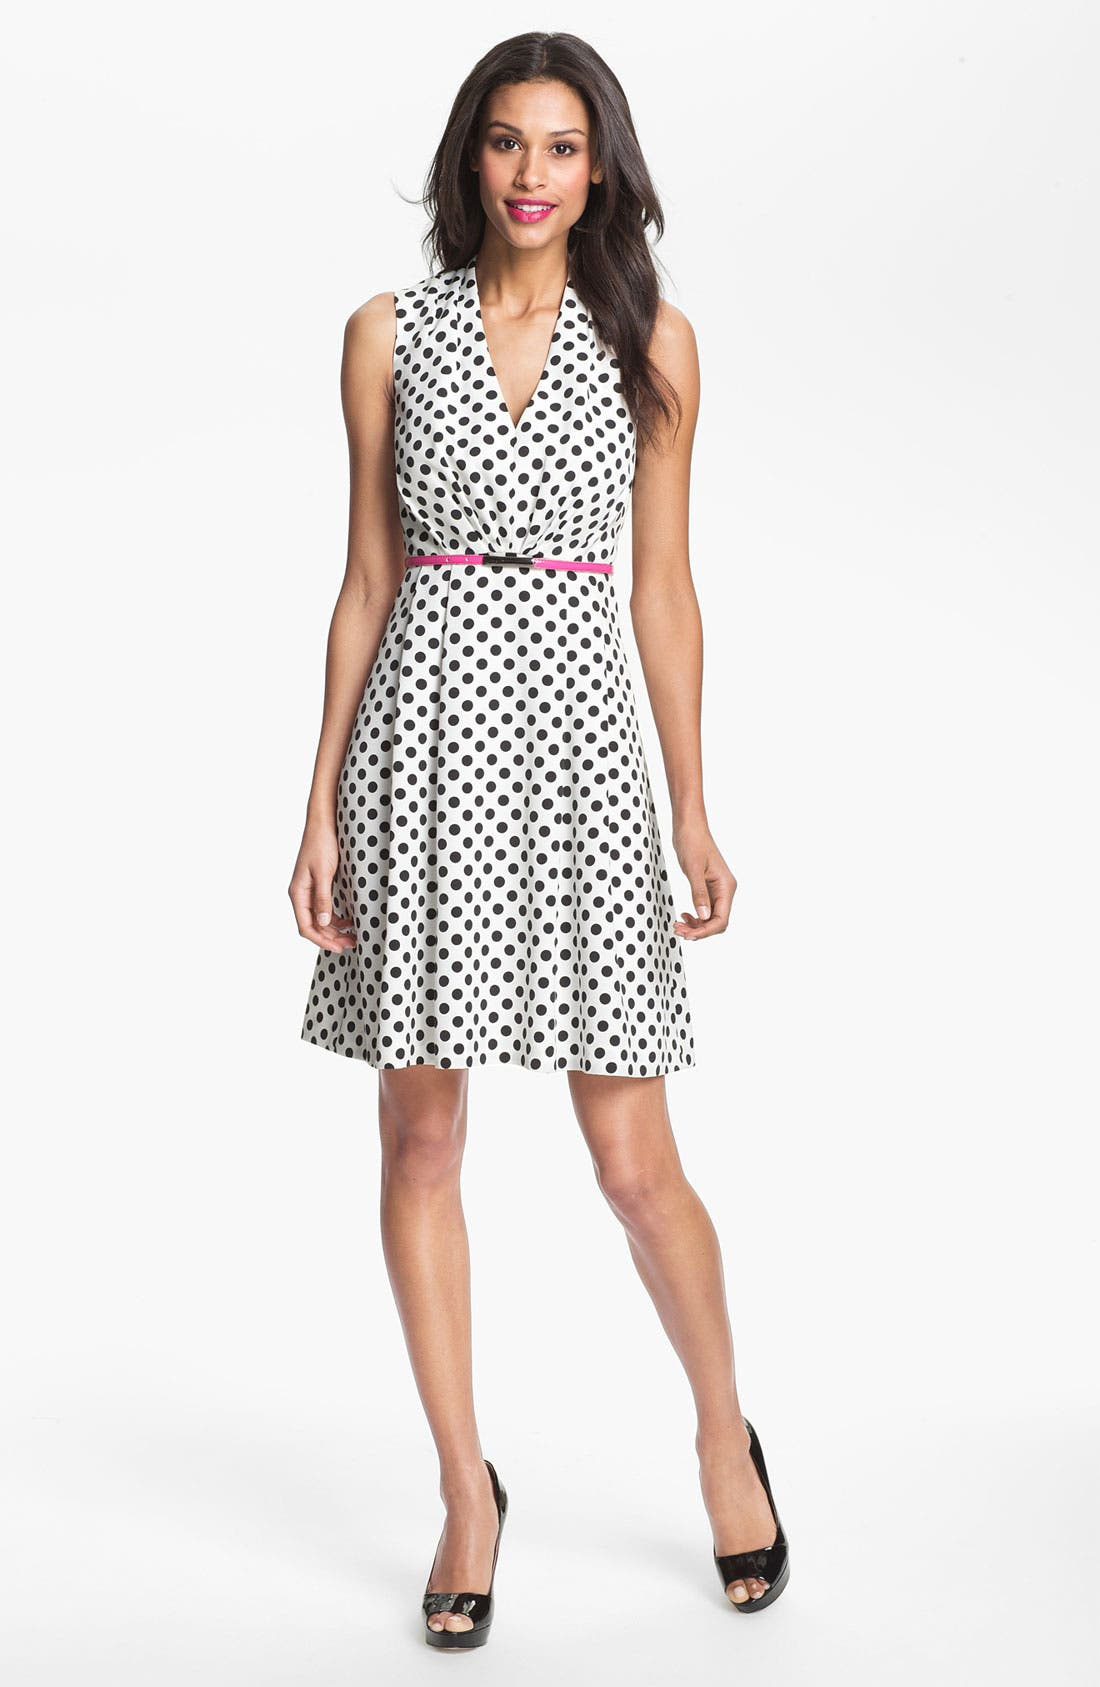 Main Image - Adrianna Papell Polka Dot Fit & Flare Dress